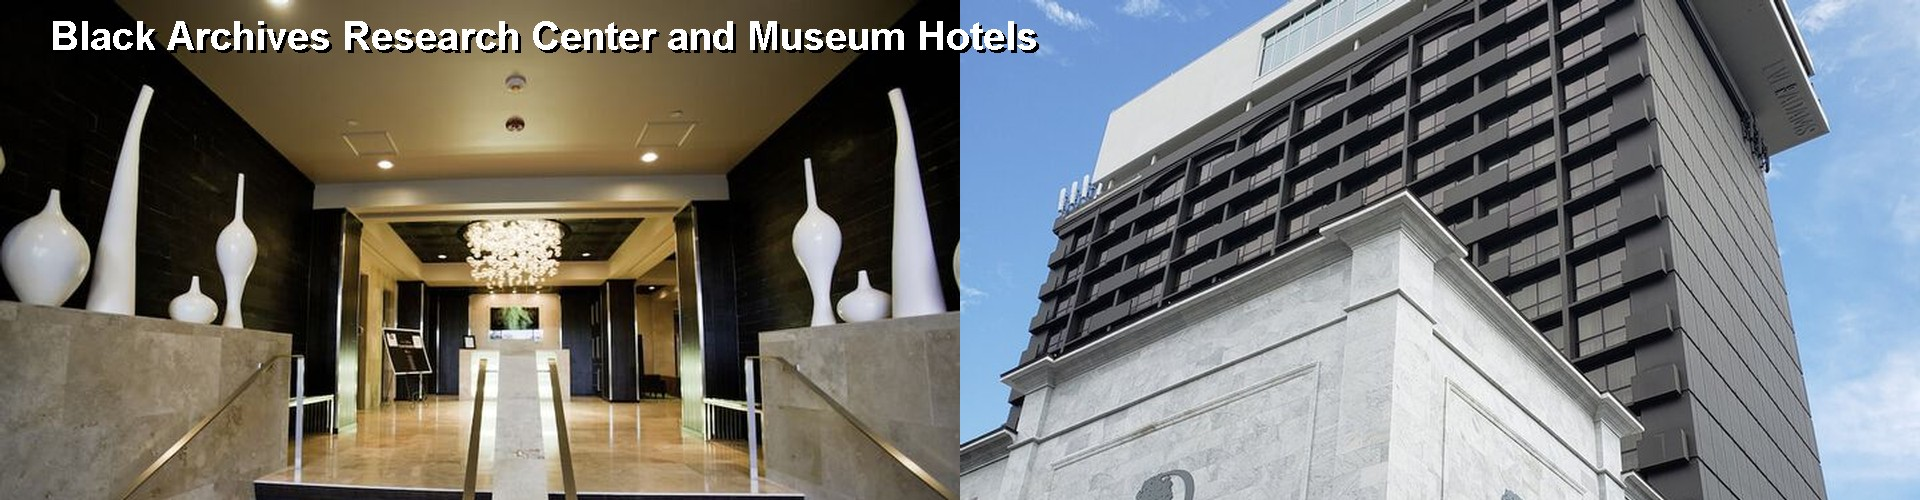 5 Best Hotels near Black Archives Research Center and Museum